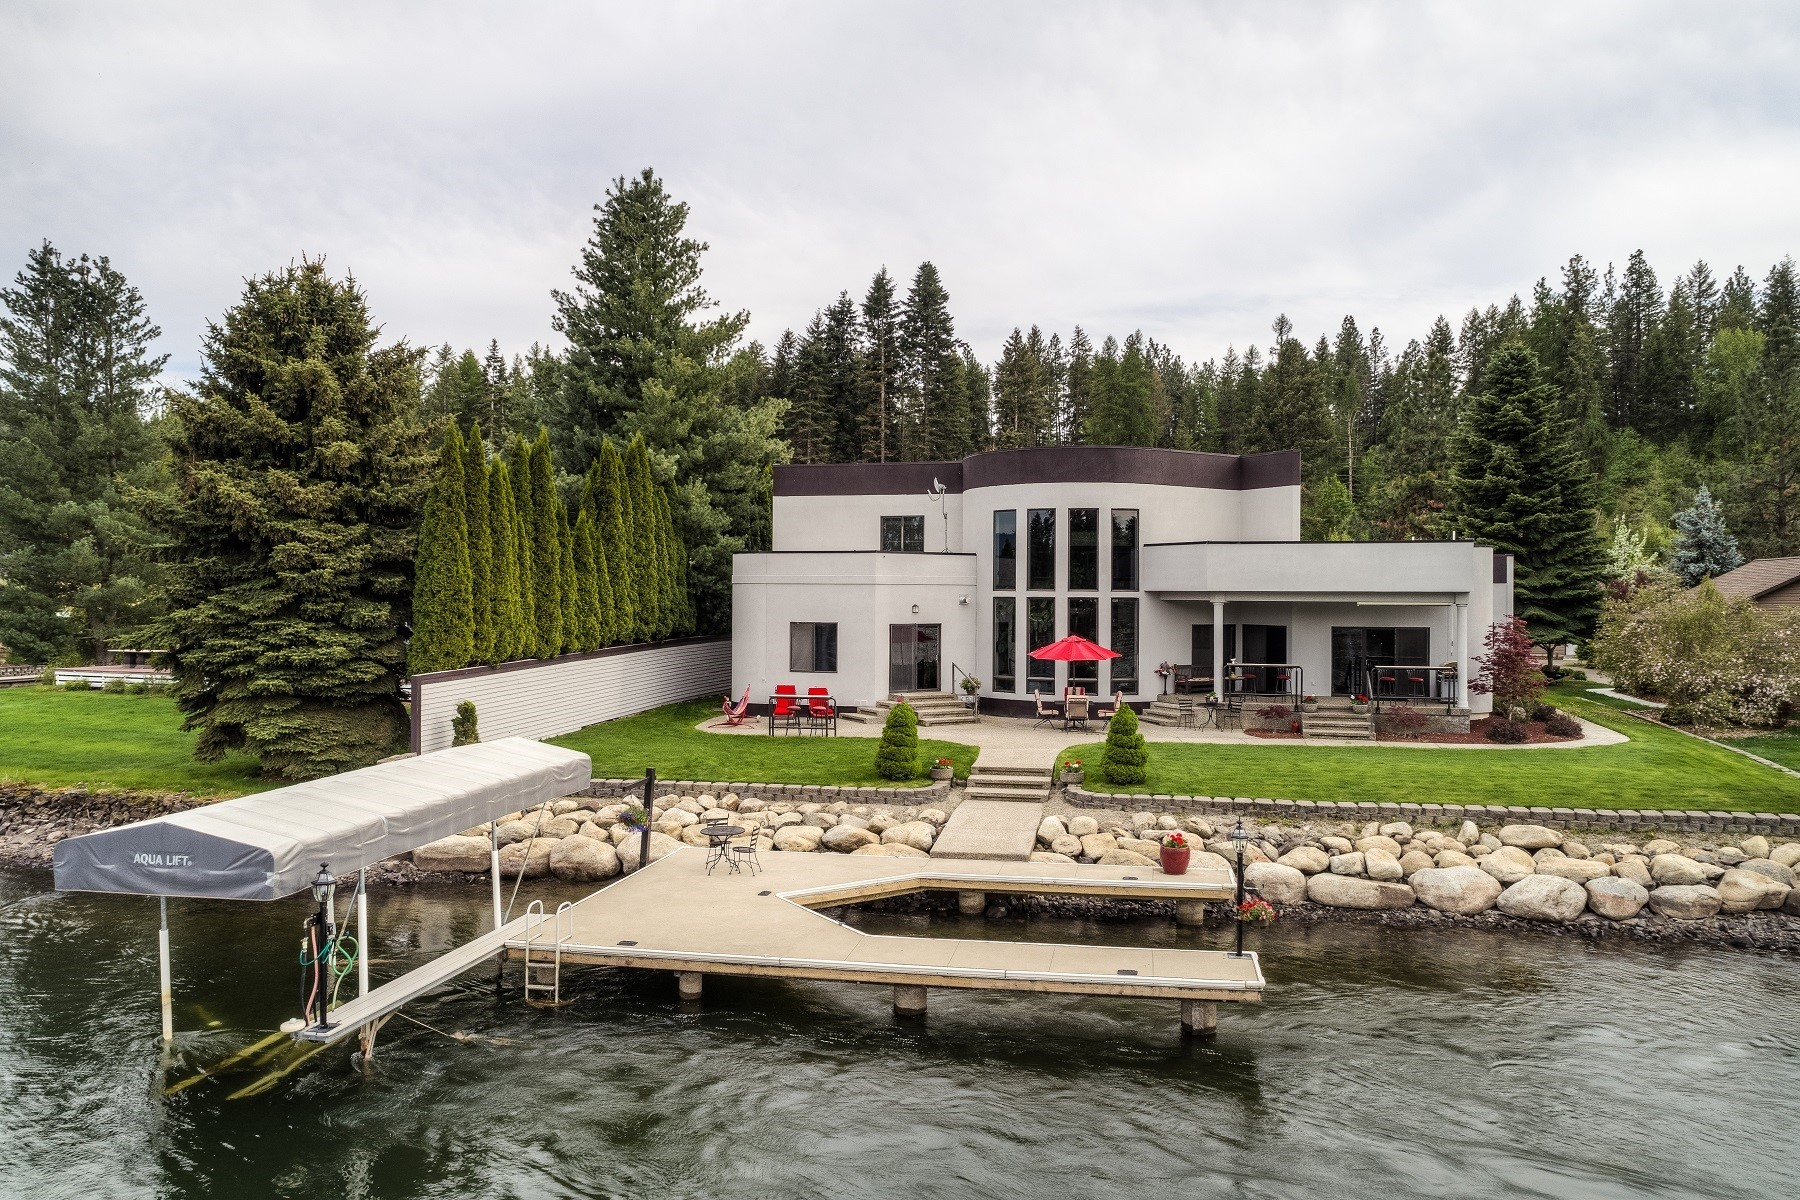 Single Family Homes for Sale at Hidden Island's Treasure 440 S Hidden Island Lane Coeur D Alene, Idaho 83814 United States